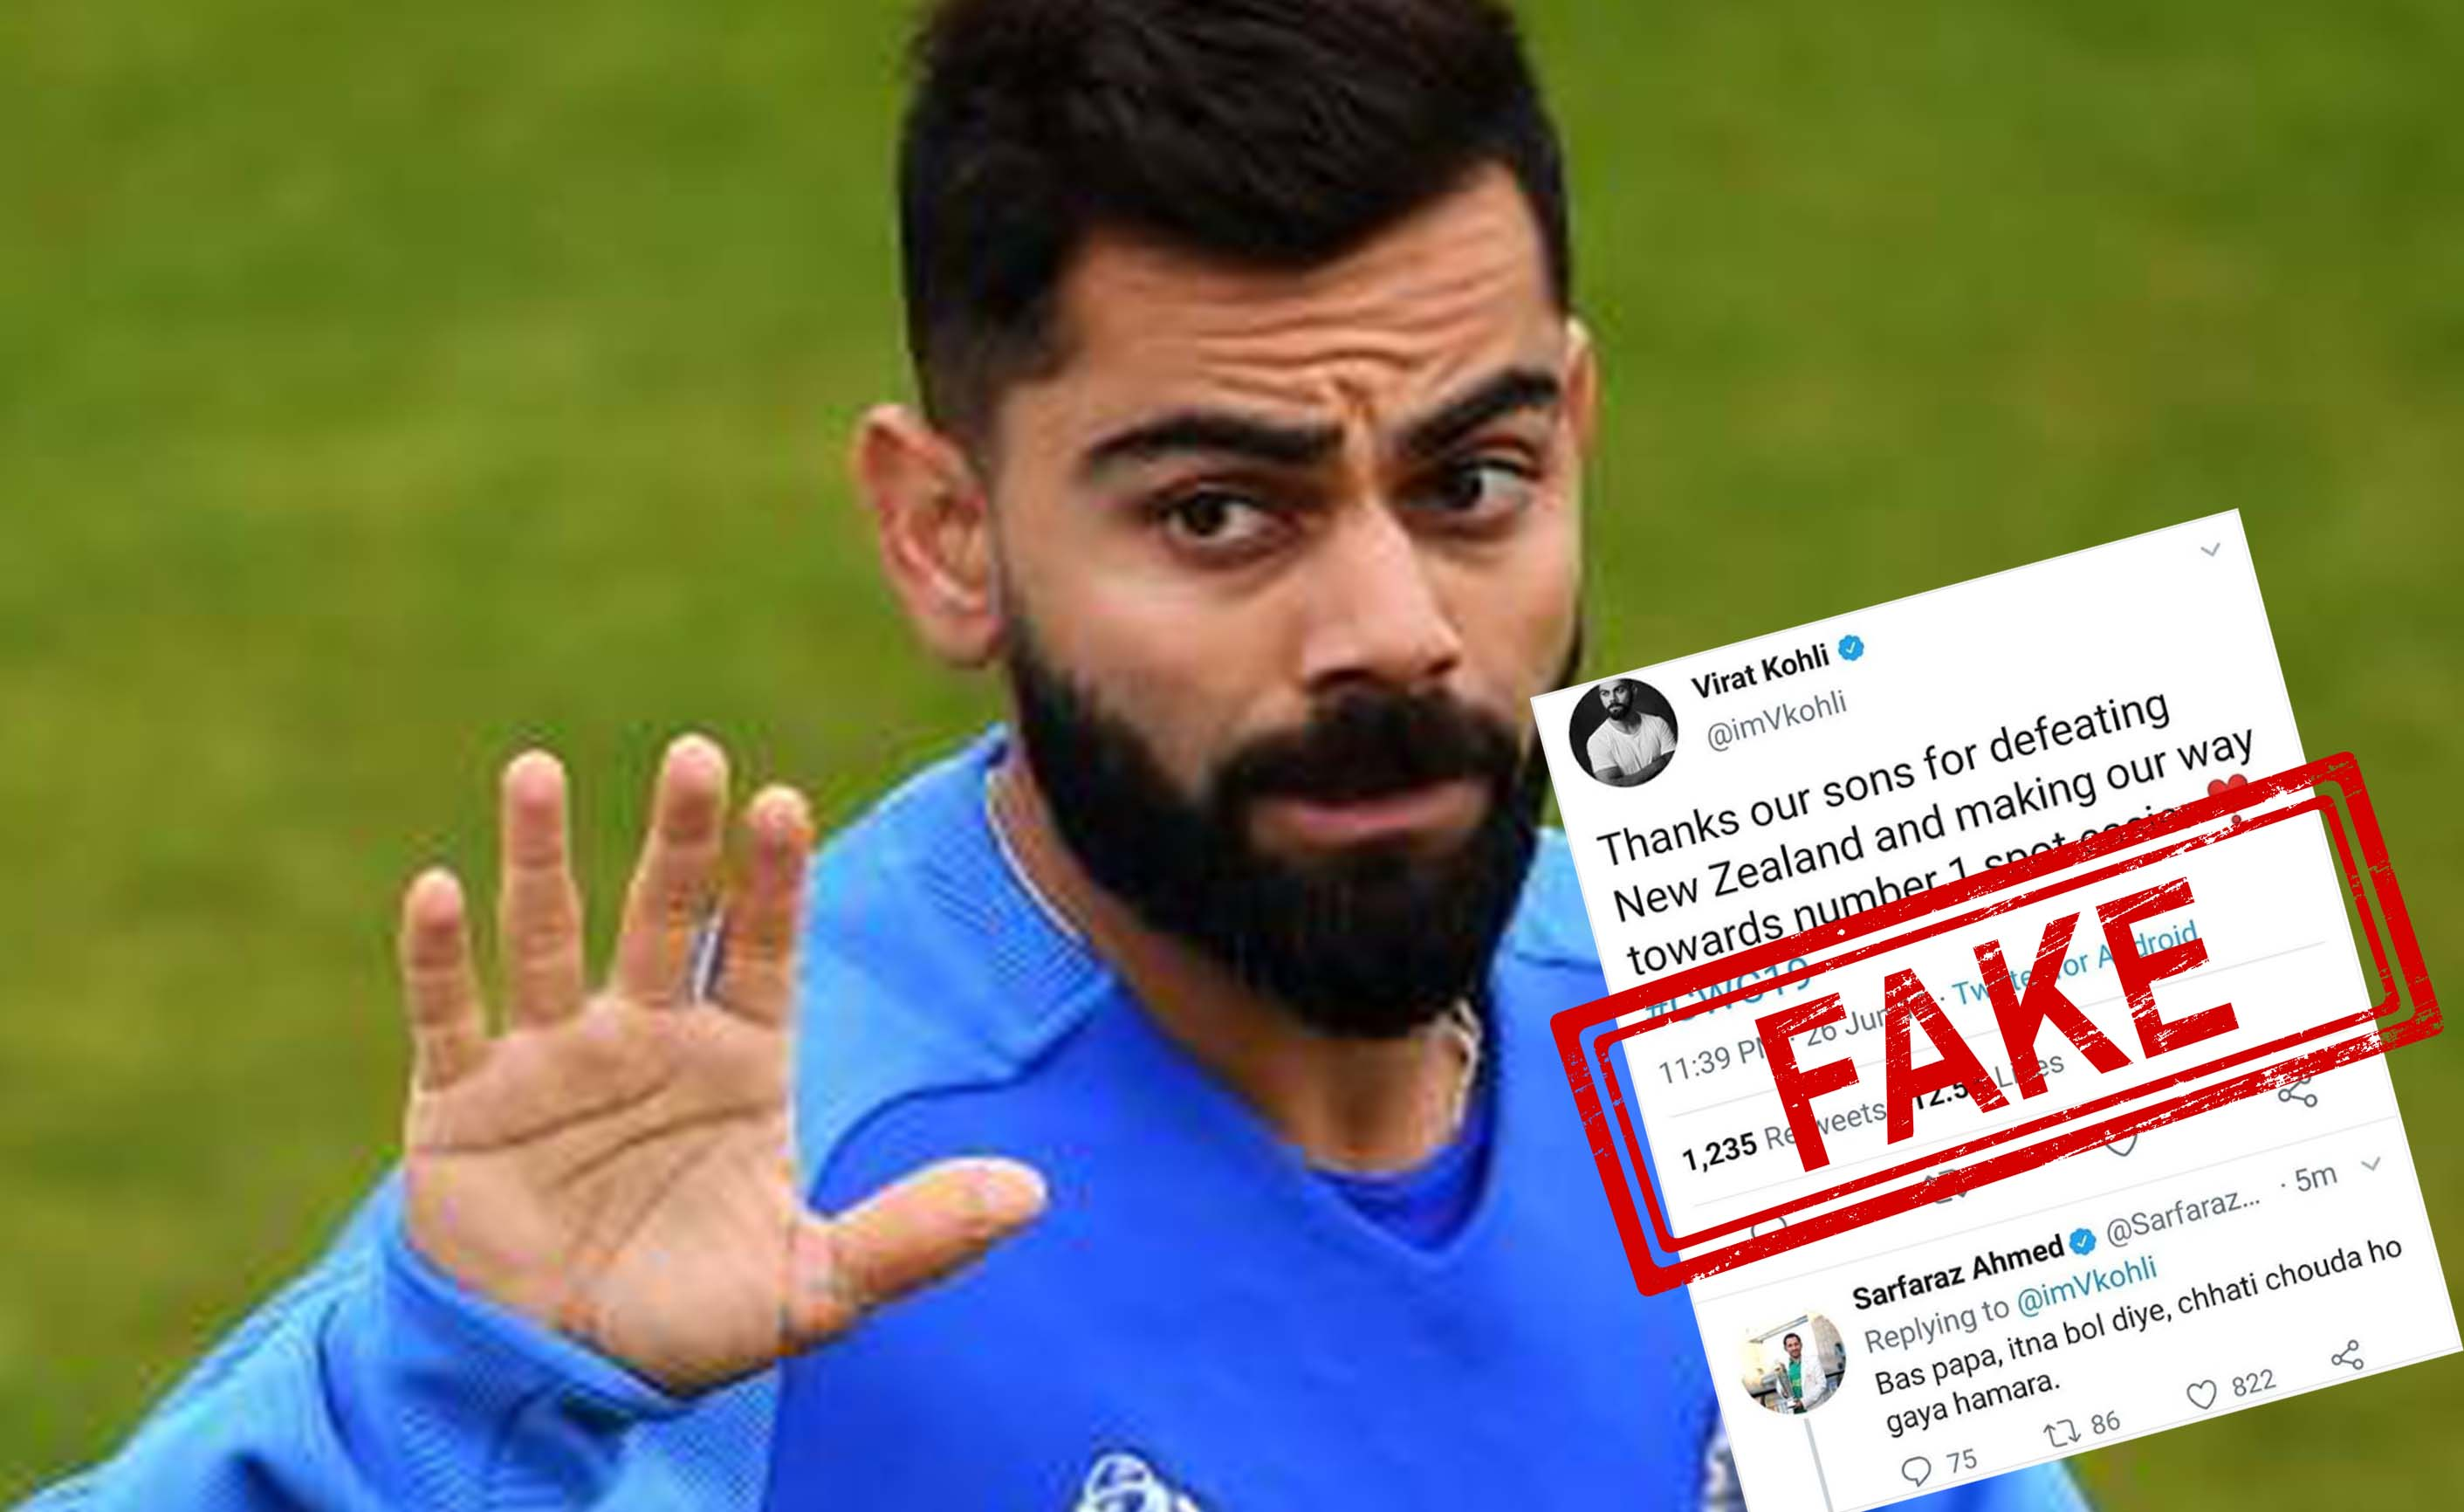 Virat Kohli, New Zealand, Sarfaraz Ahmed, Cricket, NewsMobile, Mobile, news, Sports, Fact Check, Fact Checker, FAKE